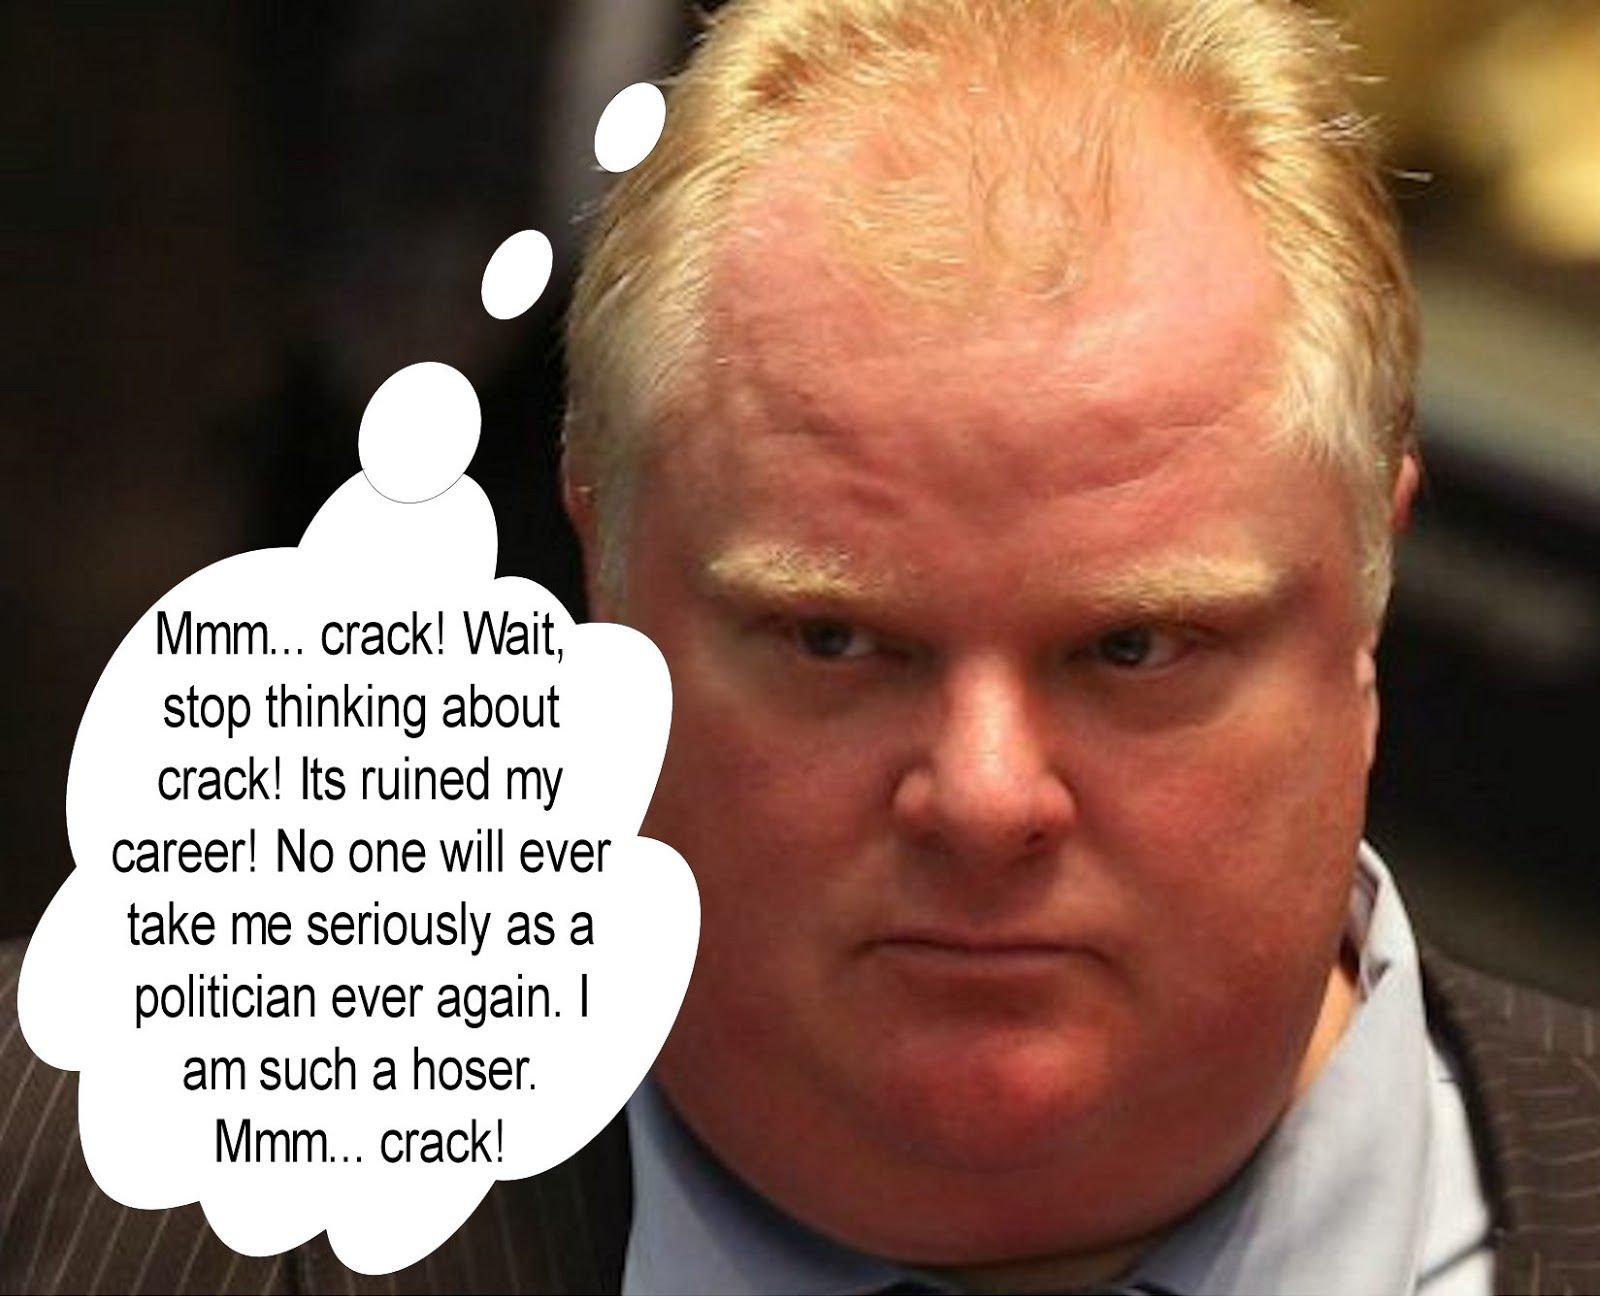 FUCK ROB FORD